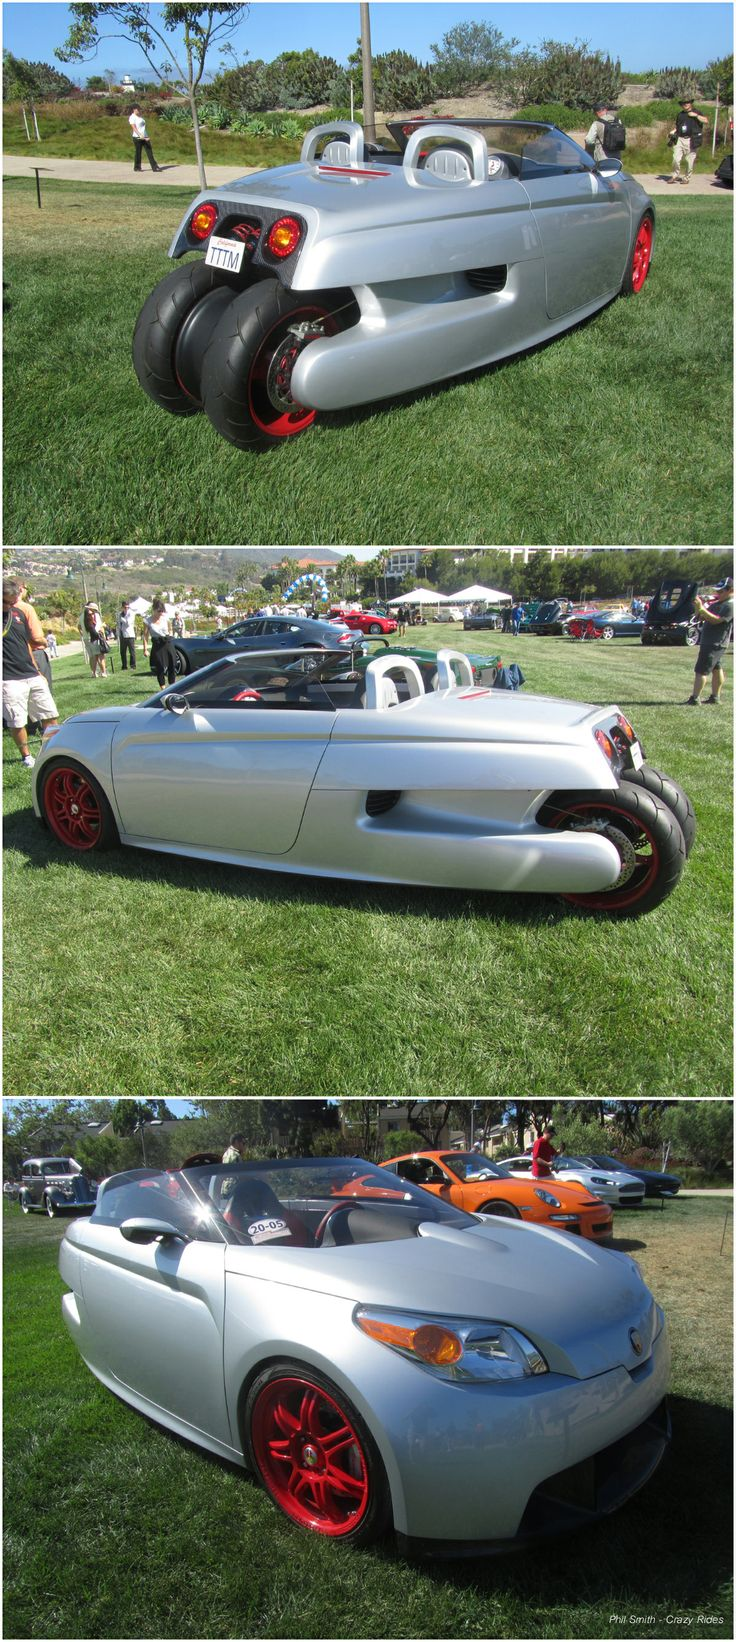 44 best c a n 3 wheelers images on pinterest weird cars for Operating costs of a motor vehicle answer key